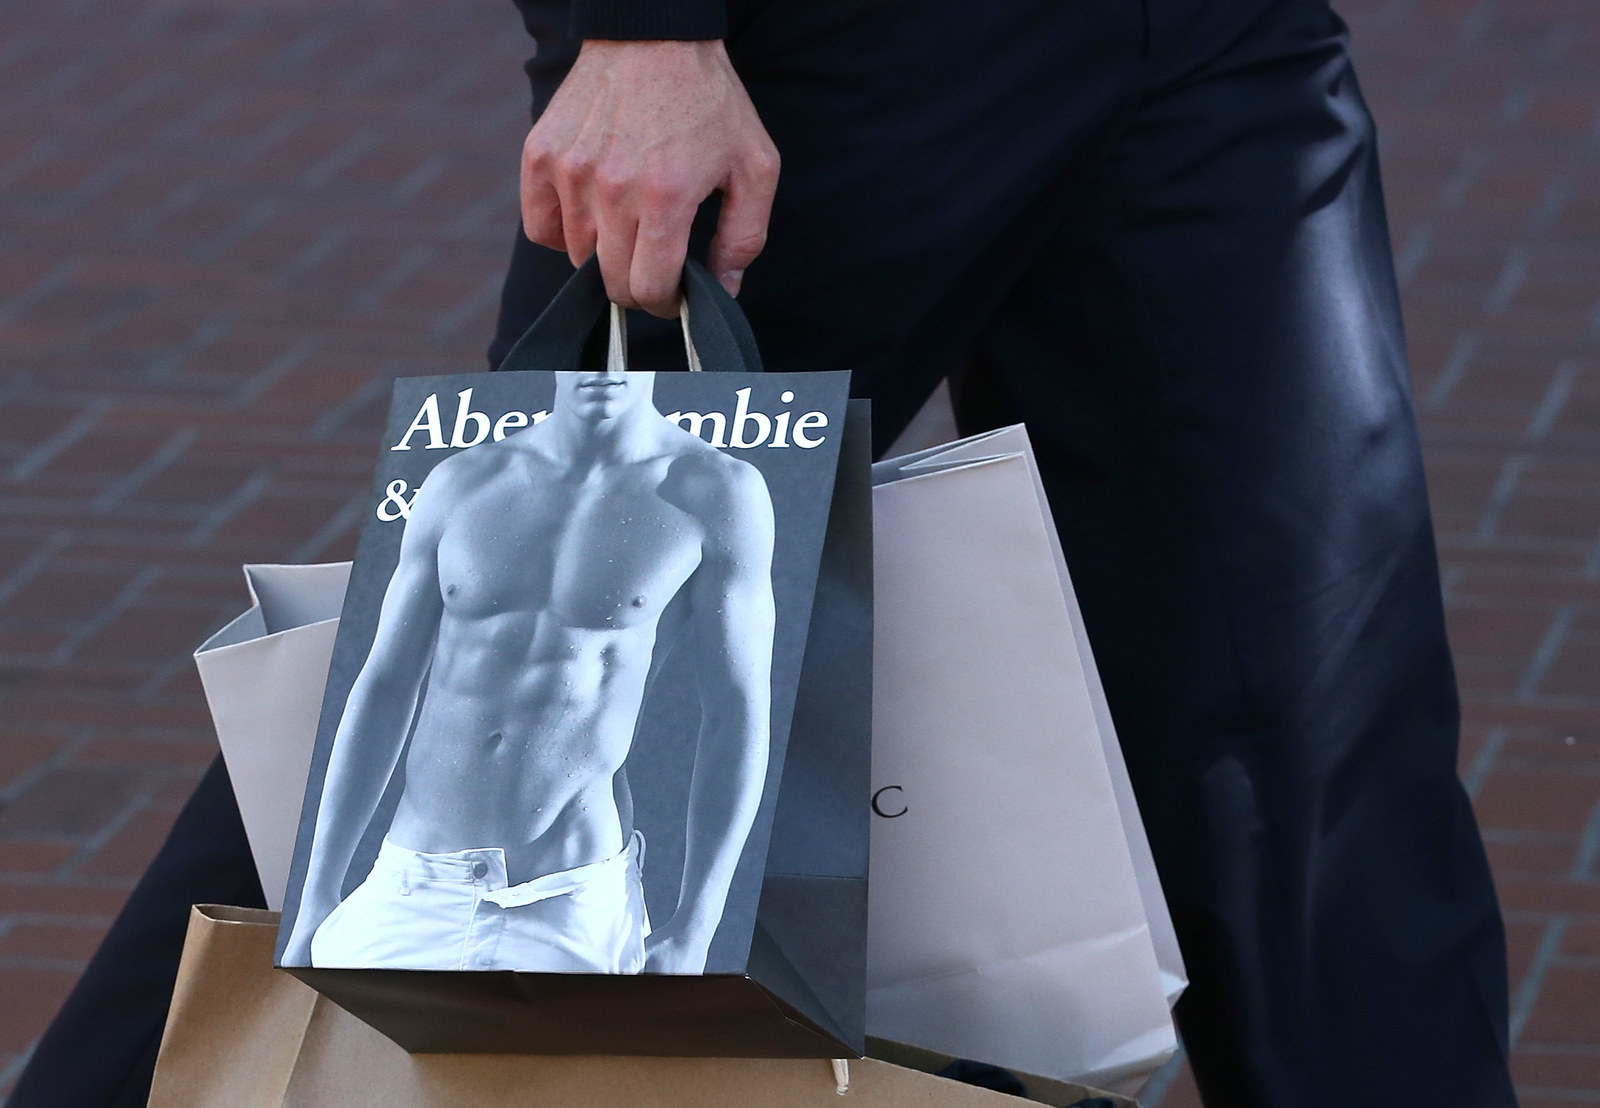 Person holding bags and one is an Abercombie bag with shirtless guy on it